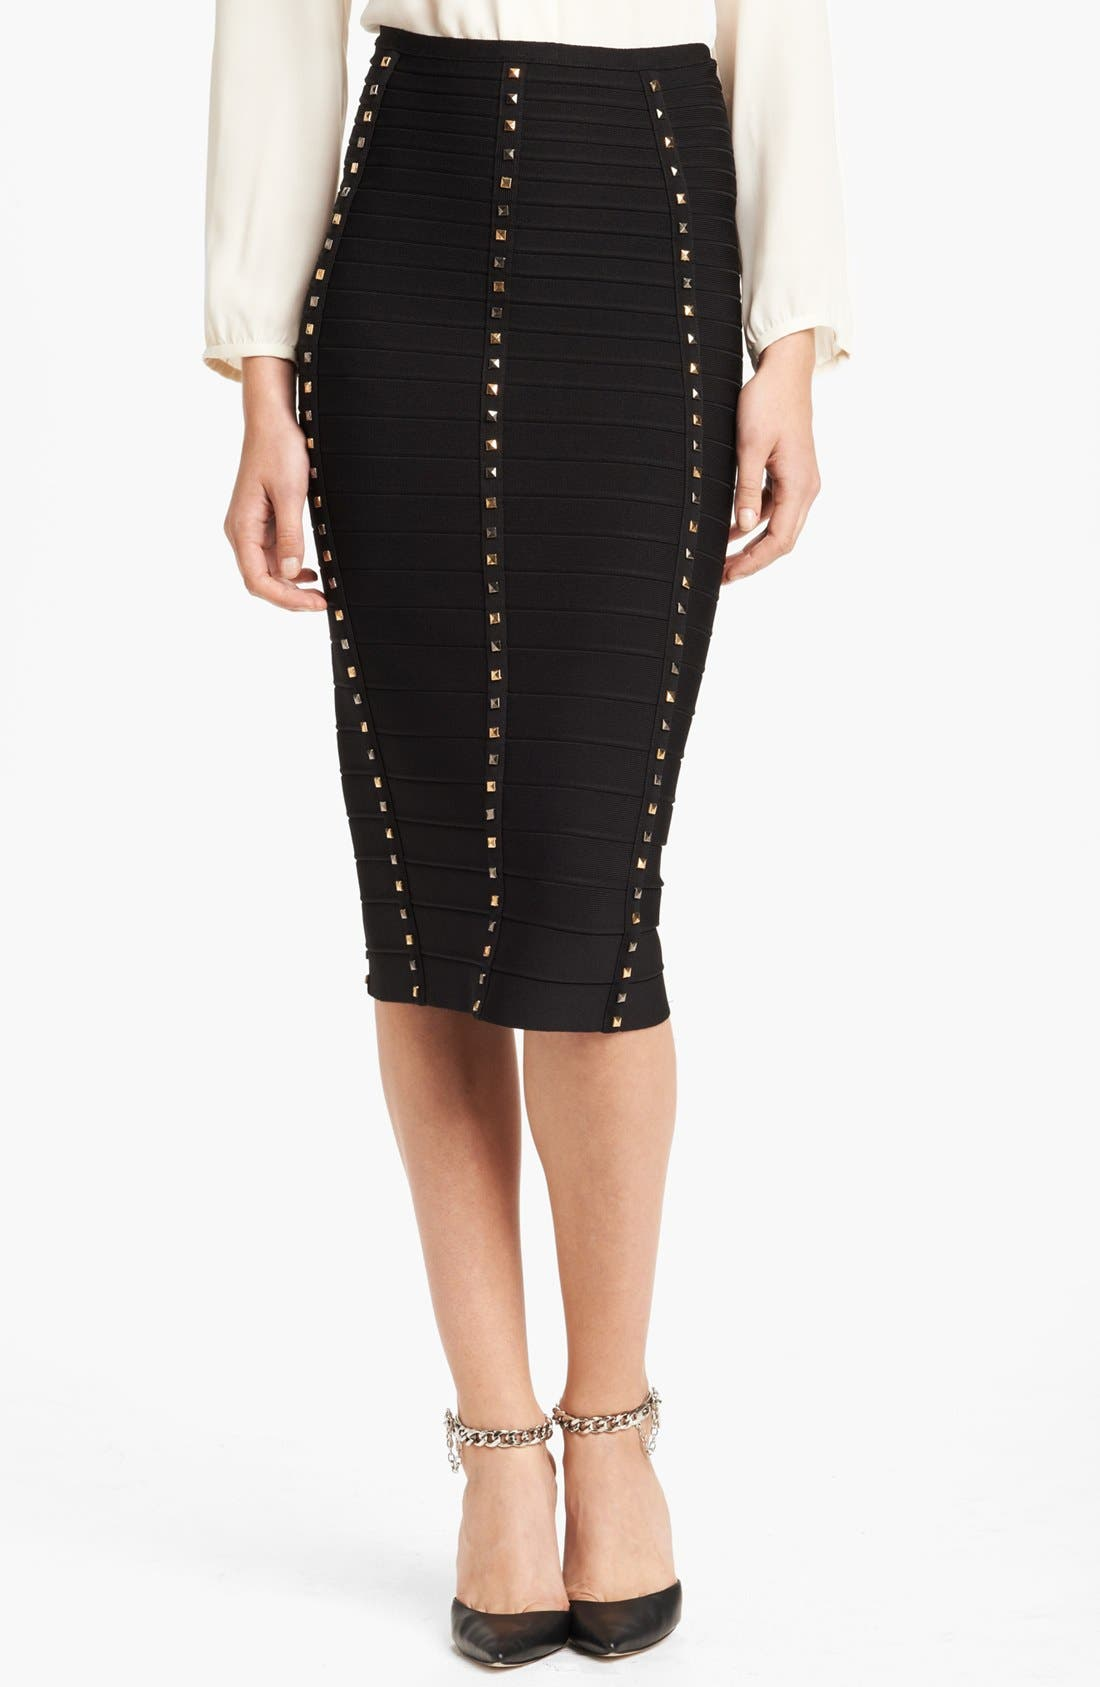 Alternate Image 1 Selected - Herve Leger Gold Stud Pencil Skirt